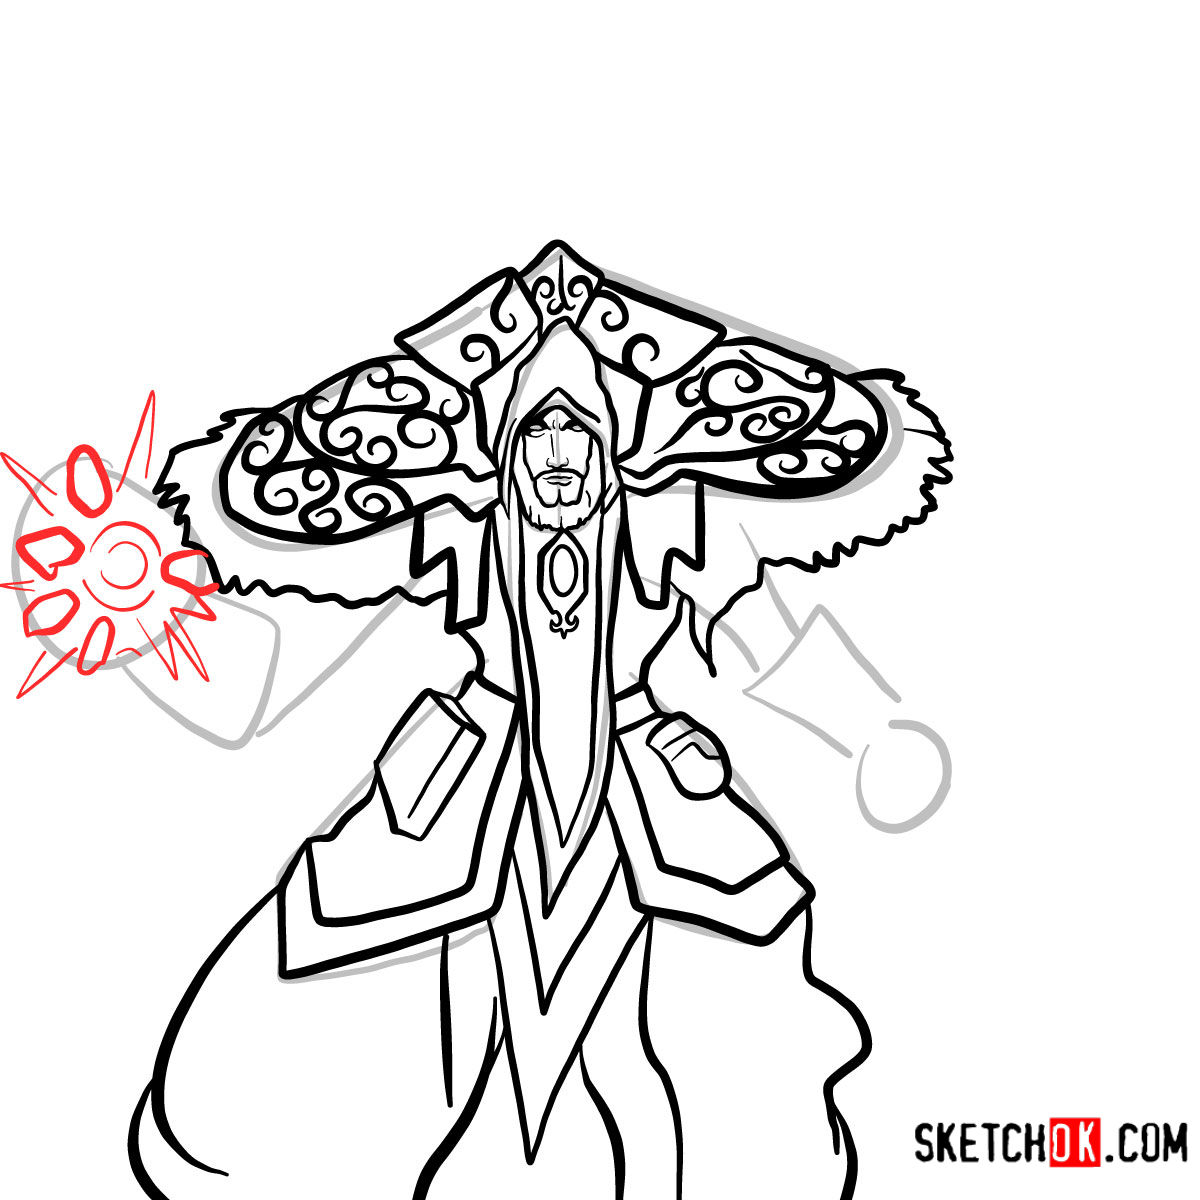 How to draw Magus Medivh | World of Warcraft - step 12